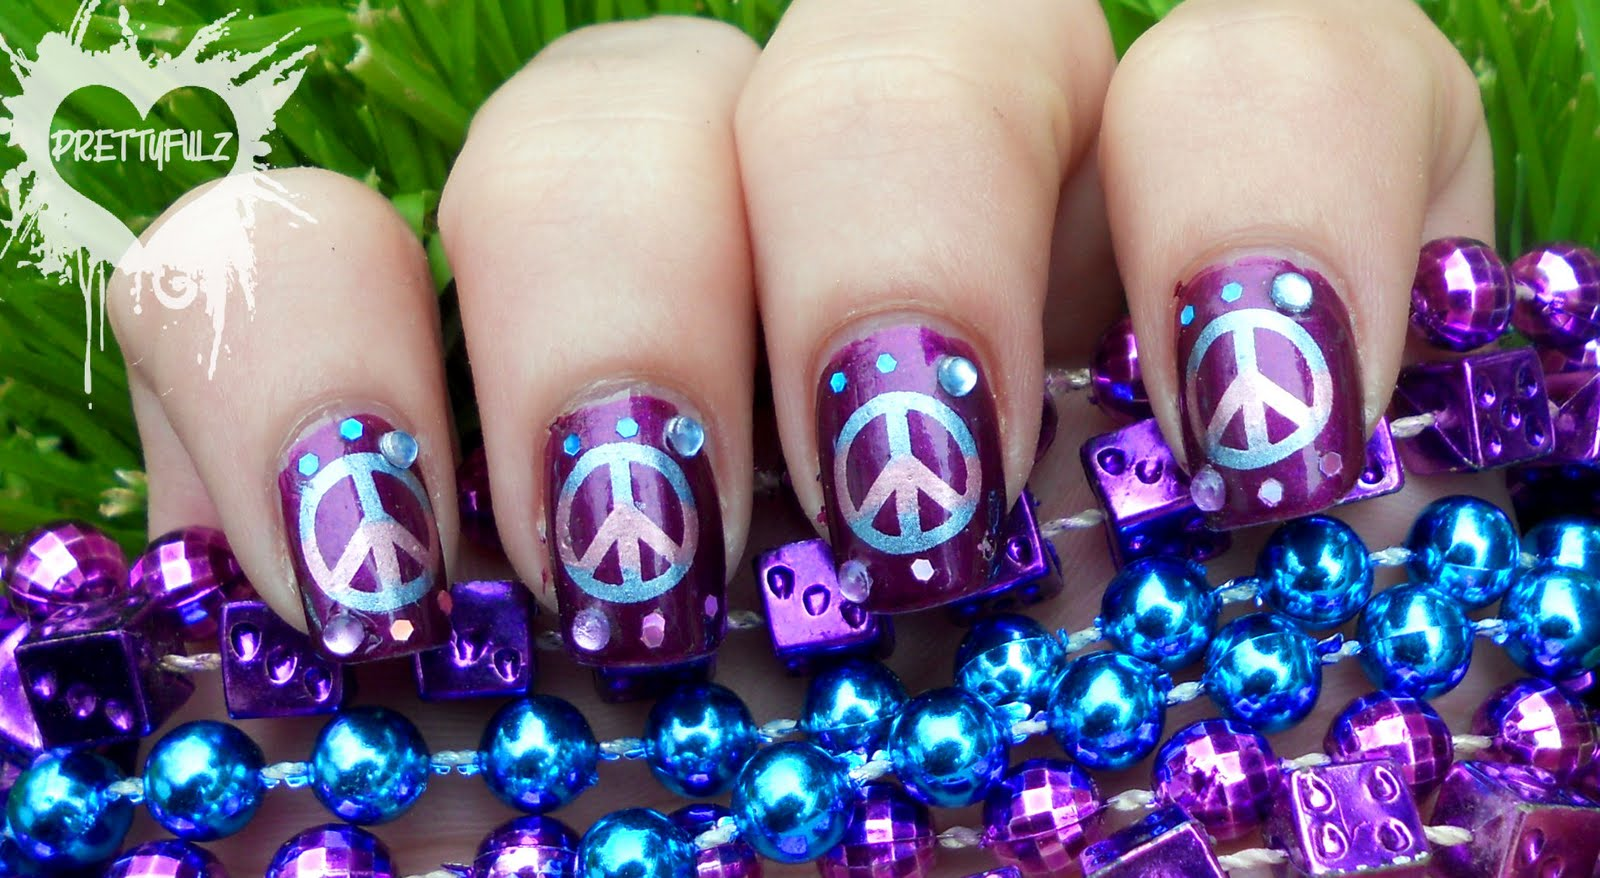 190 images about nail art/polisshes on We Heart It | See more about ...